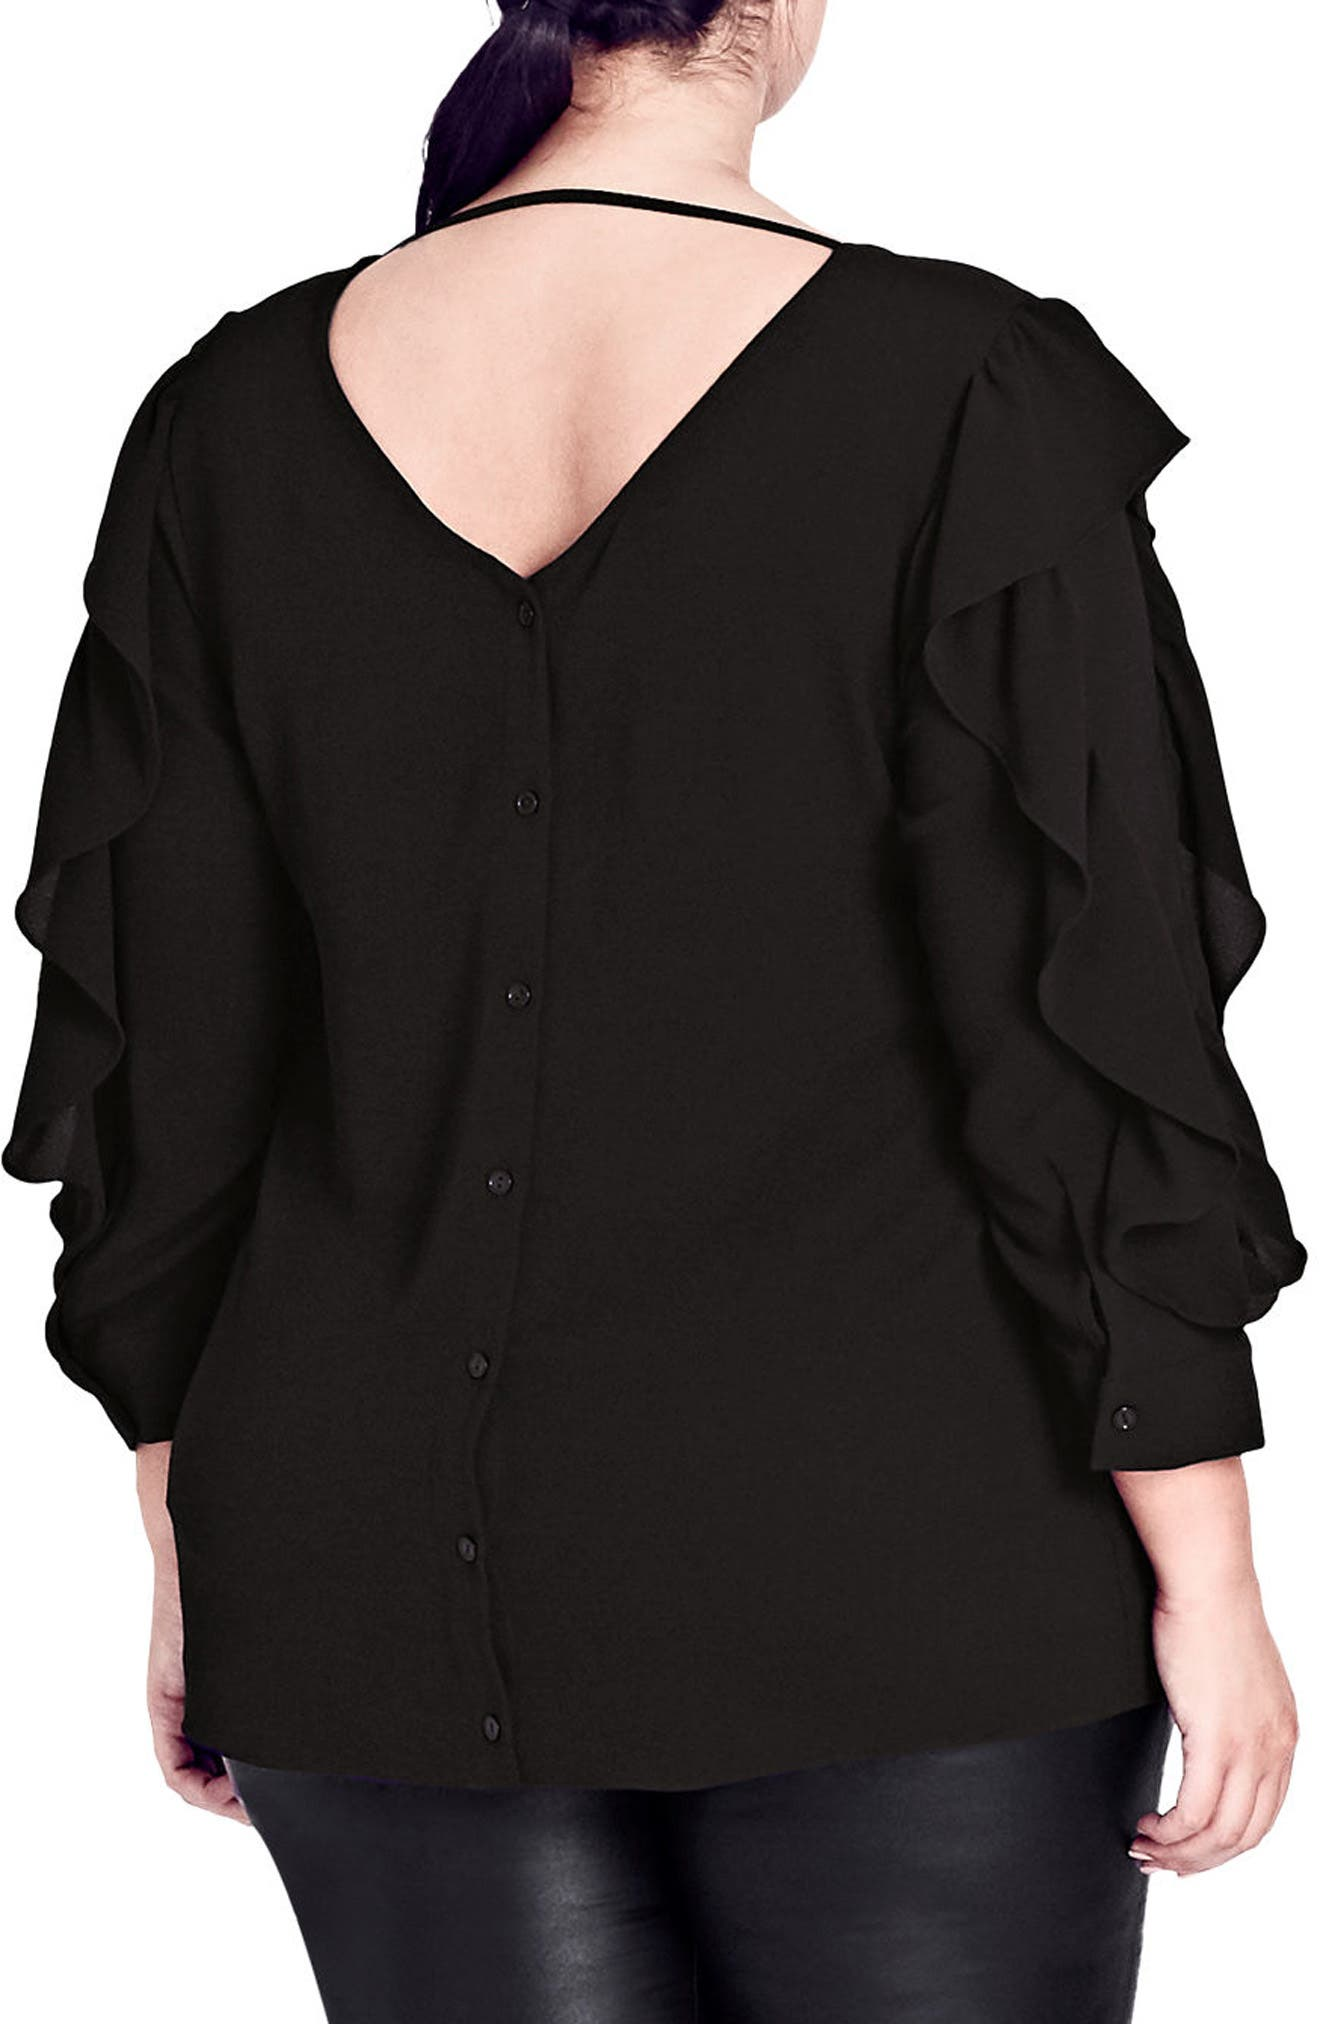 Ruffle Sleeve Button Back Shirt,                             Alternate thumbnail 2, color,                             001